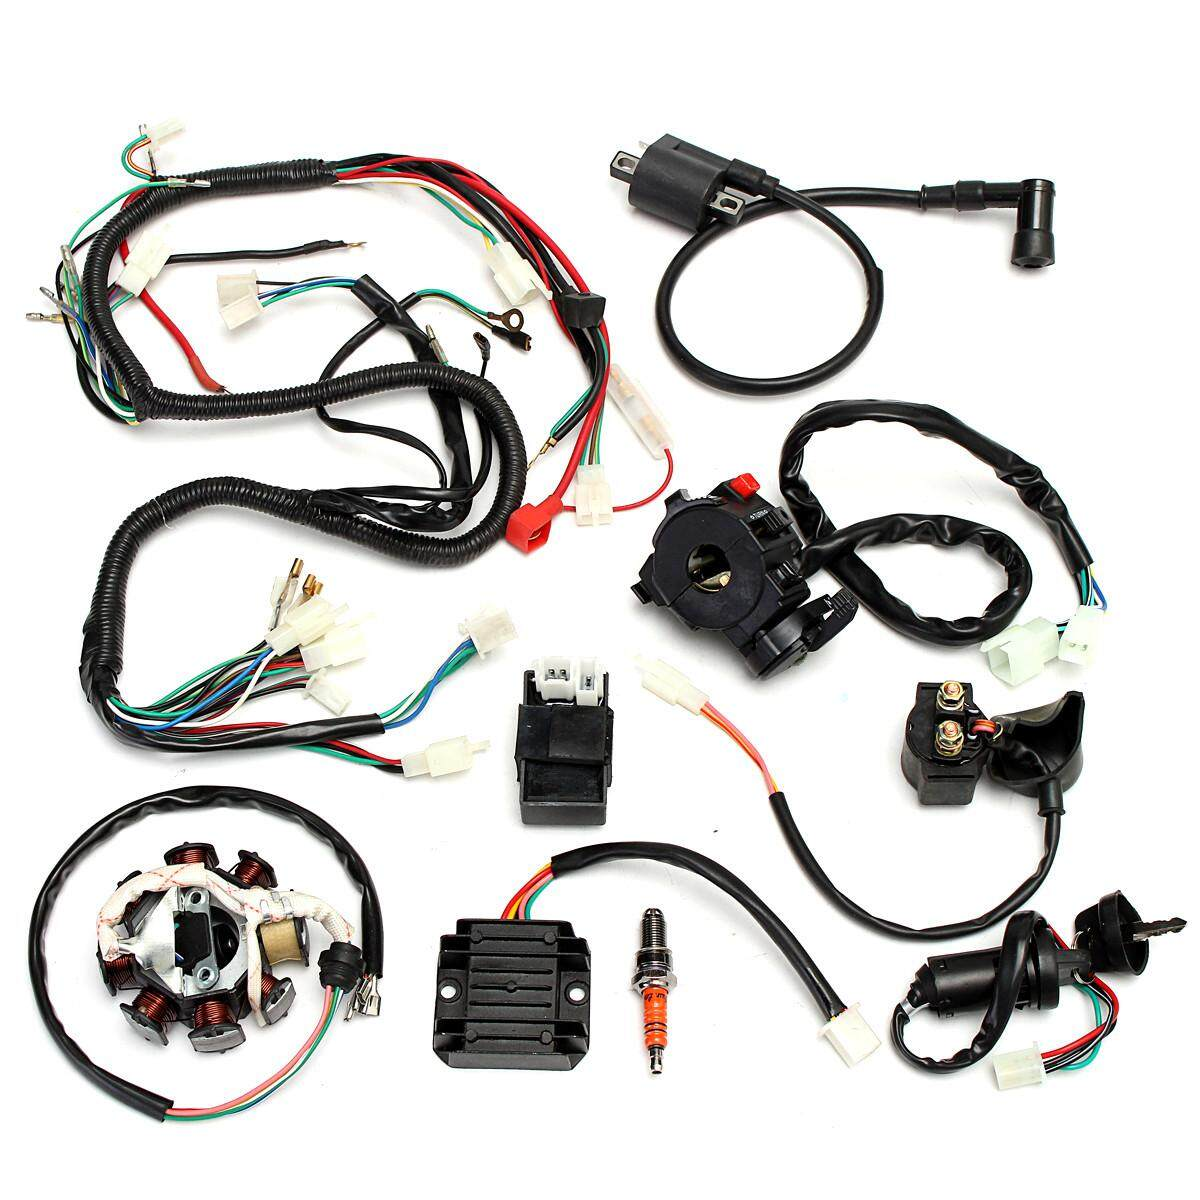 Automotive Wiring For Sale Harness Online Brands Sony Replacement Complete Electrics Chinese Dirt Bike Atv Quad 150 250 300cc Intl